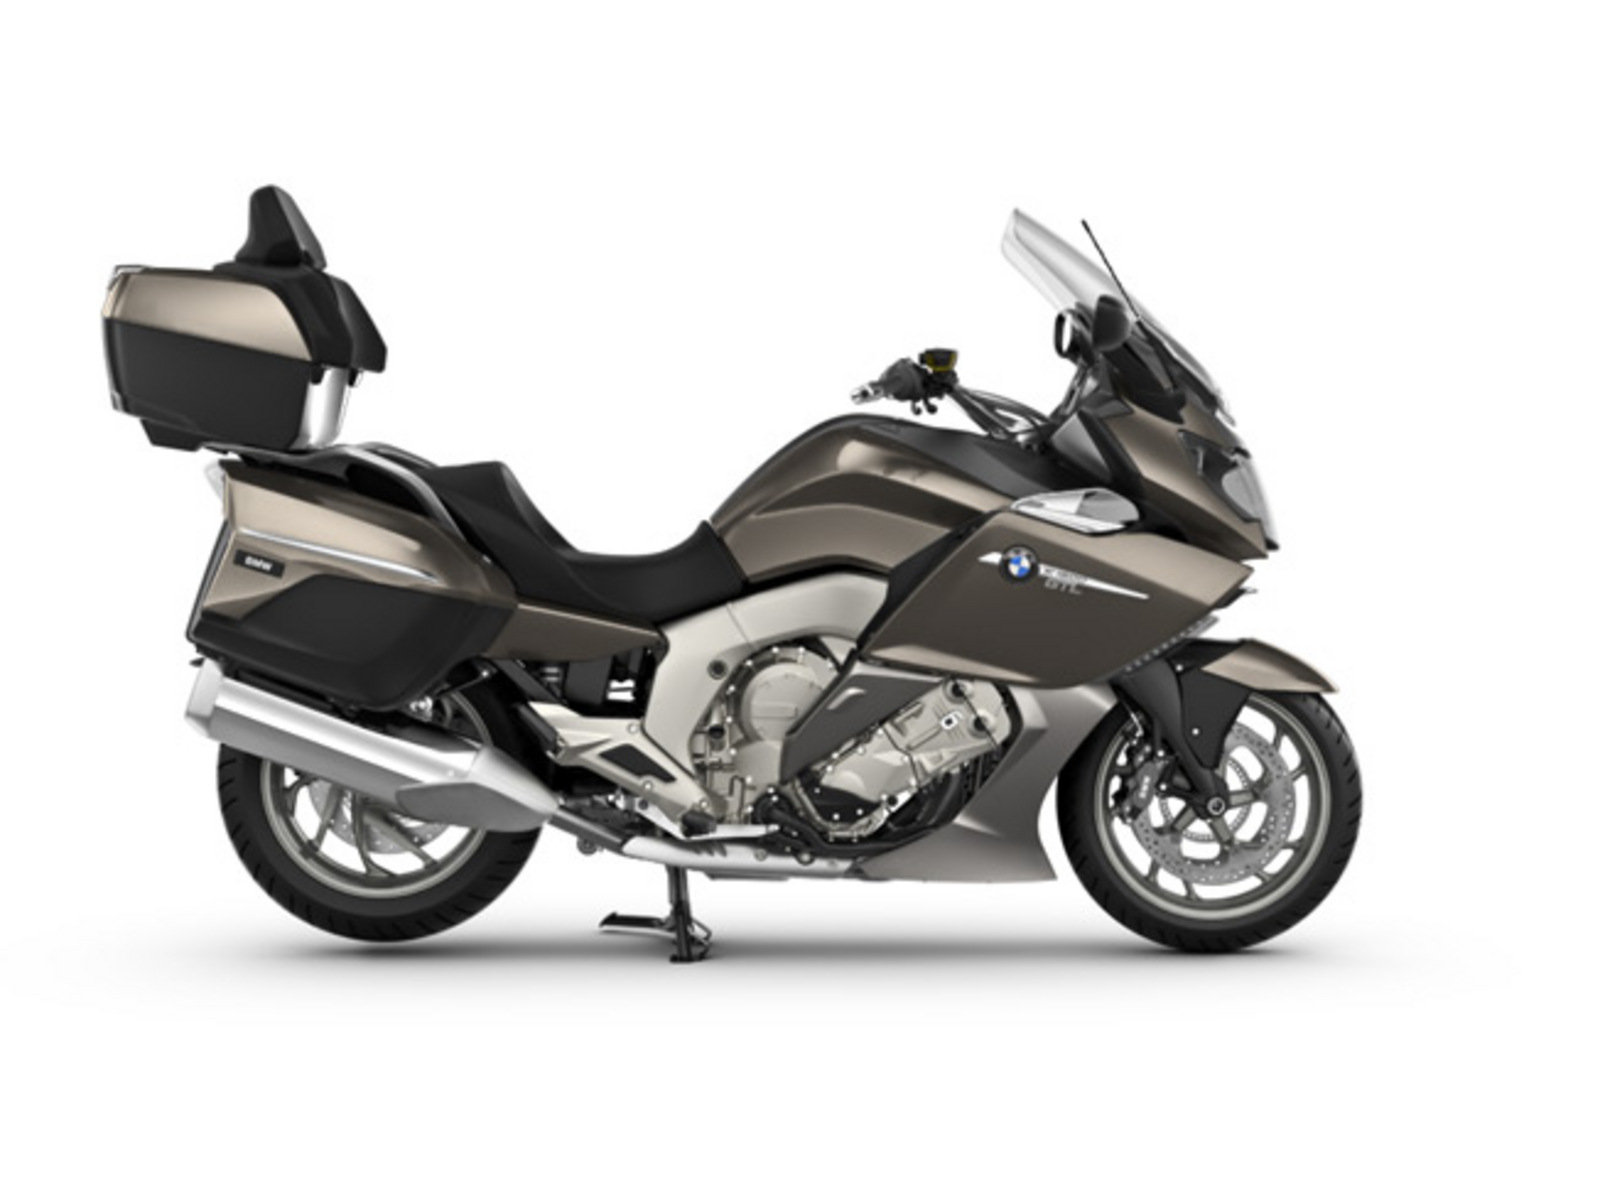 Bmw K Series Reviews Specs Prices Photos And Videos Top Speed Suzuki King Quad 750 Fuel Filter 2014 1600 Gtl